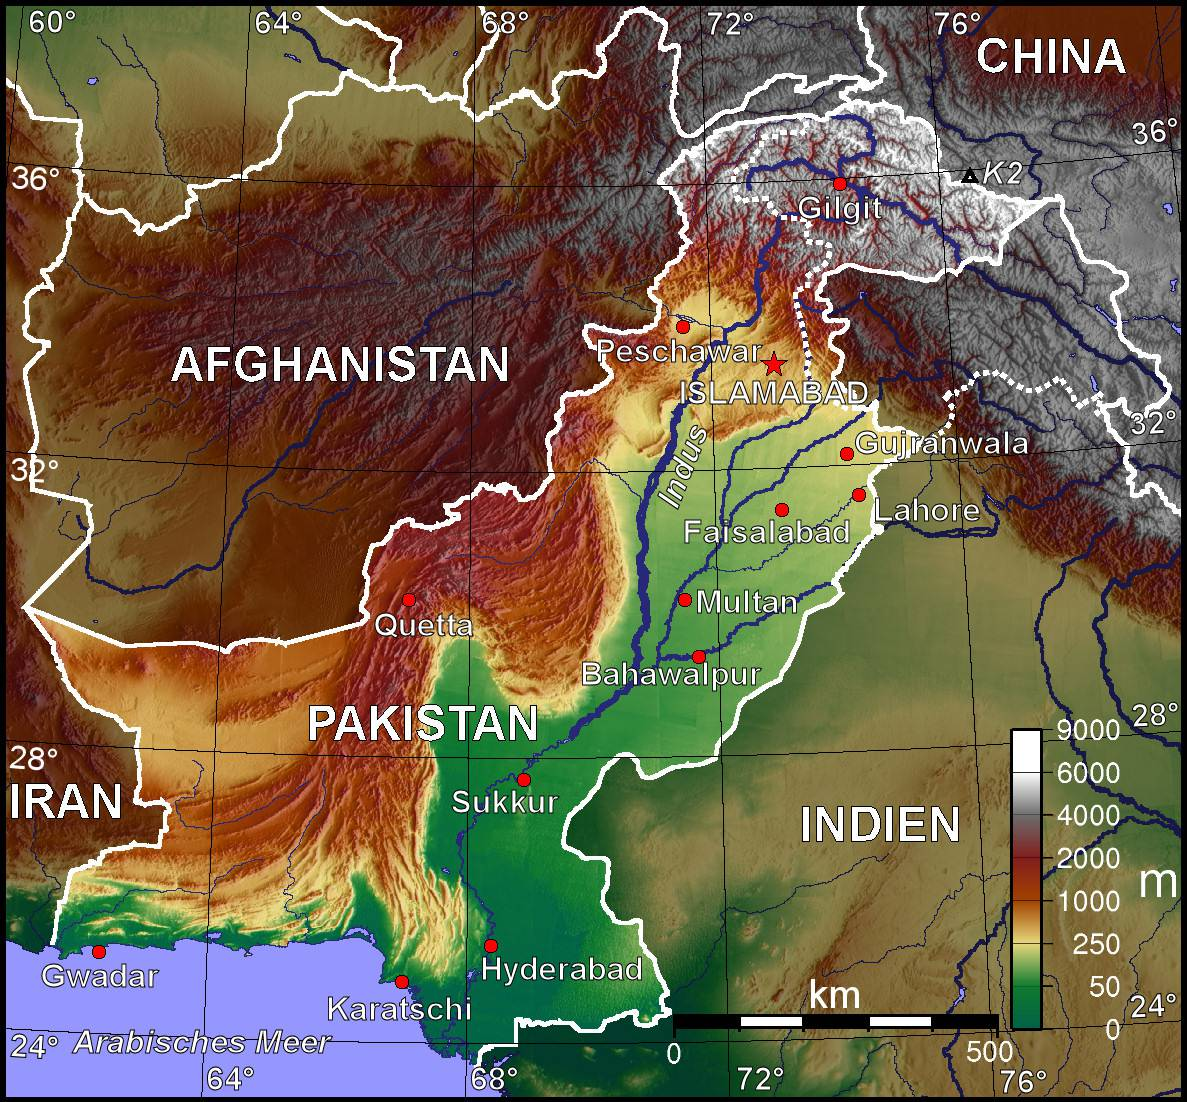 Carte topographique du Pakistan